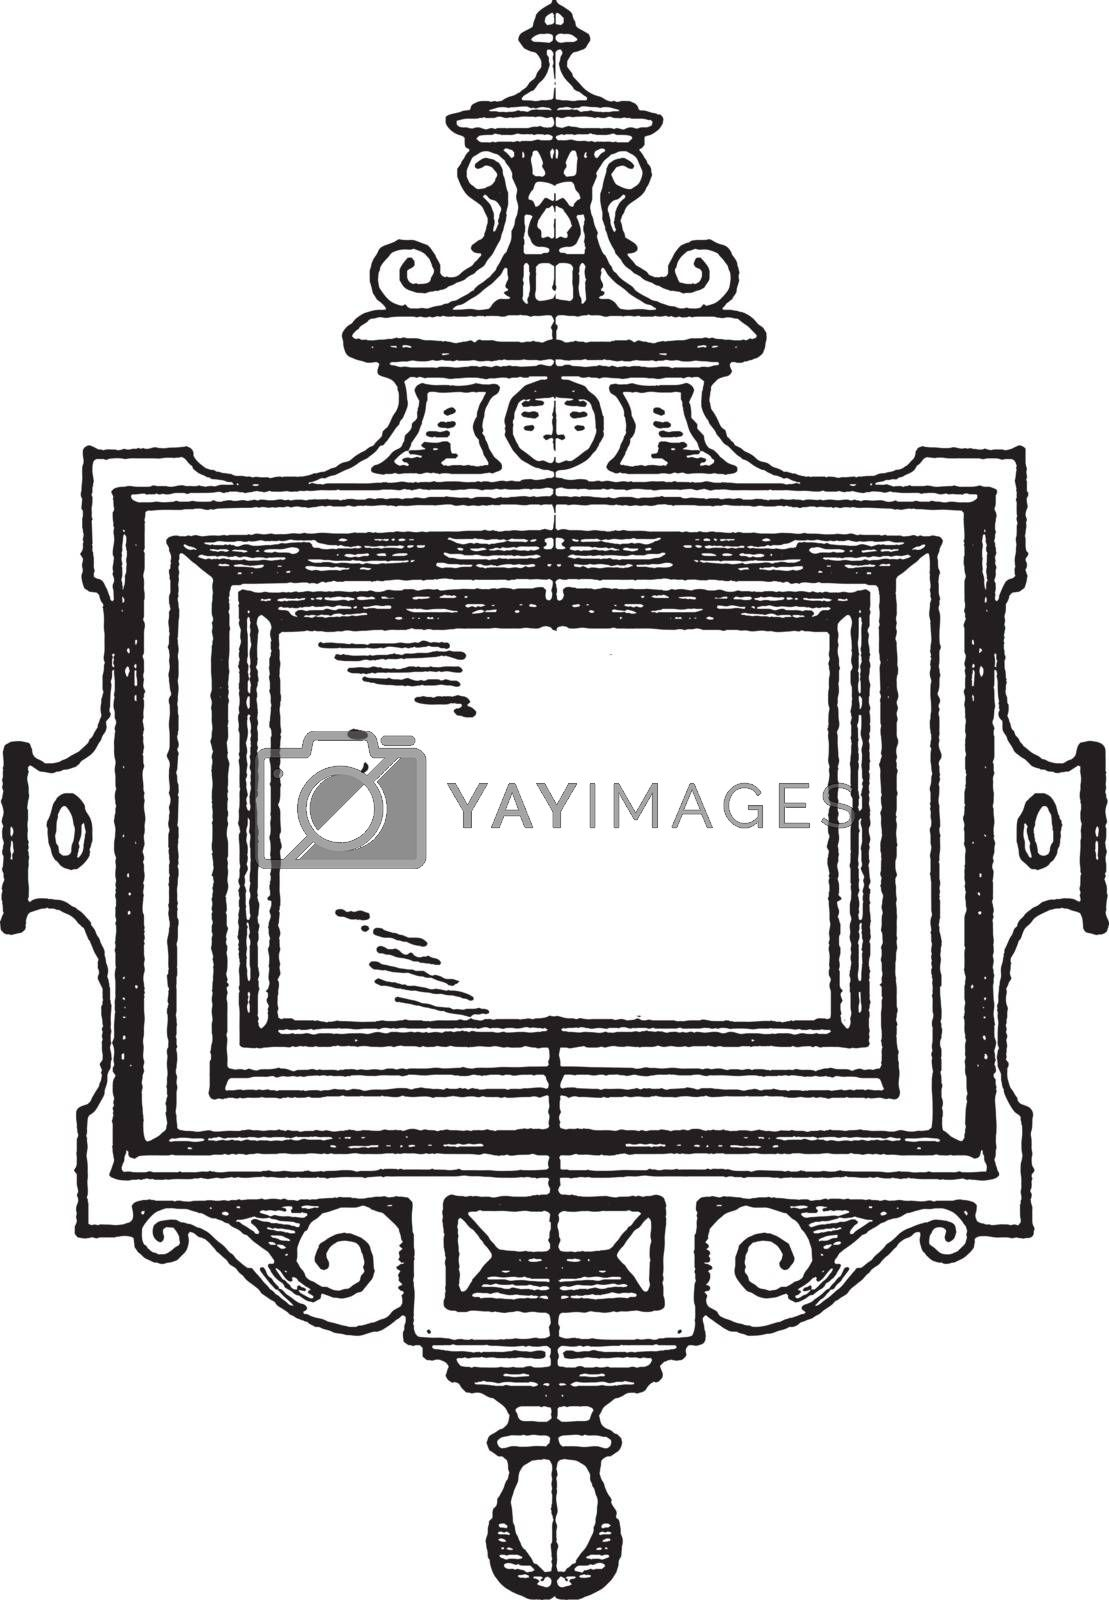 Renaissance Strap-Work Frame was made during the 17th century, v by Morphart